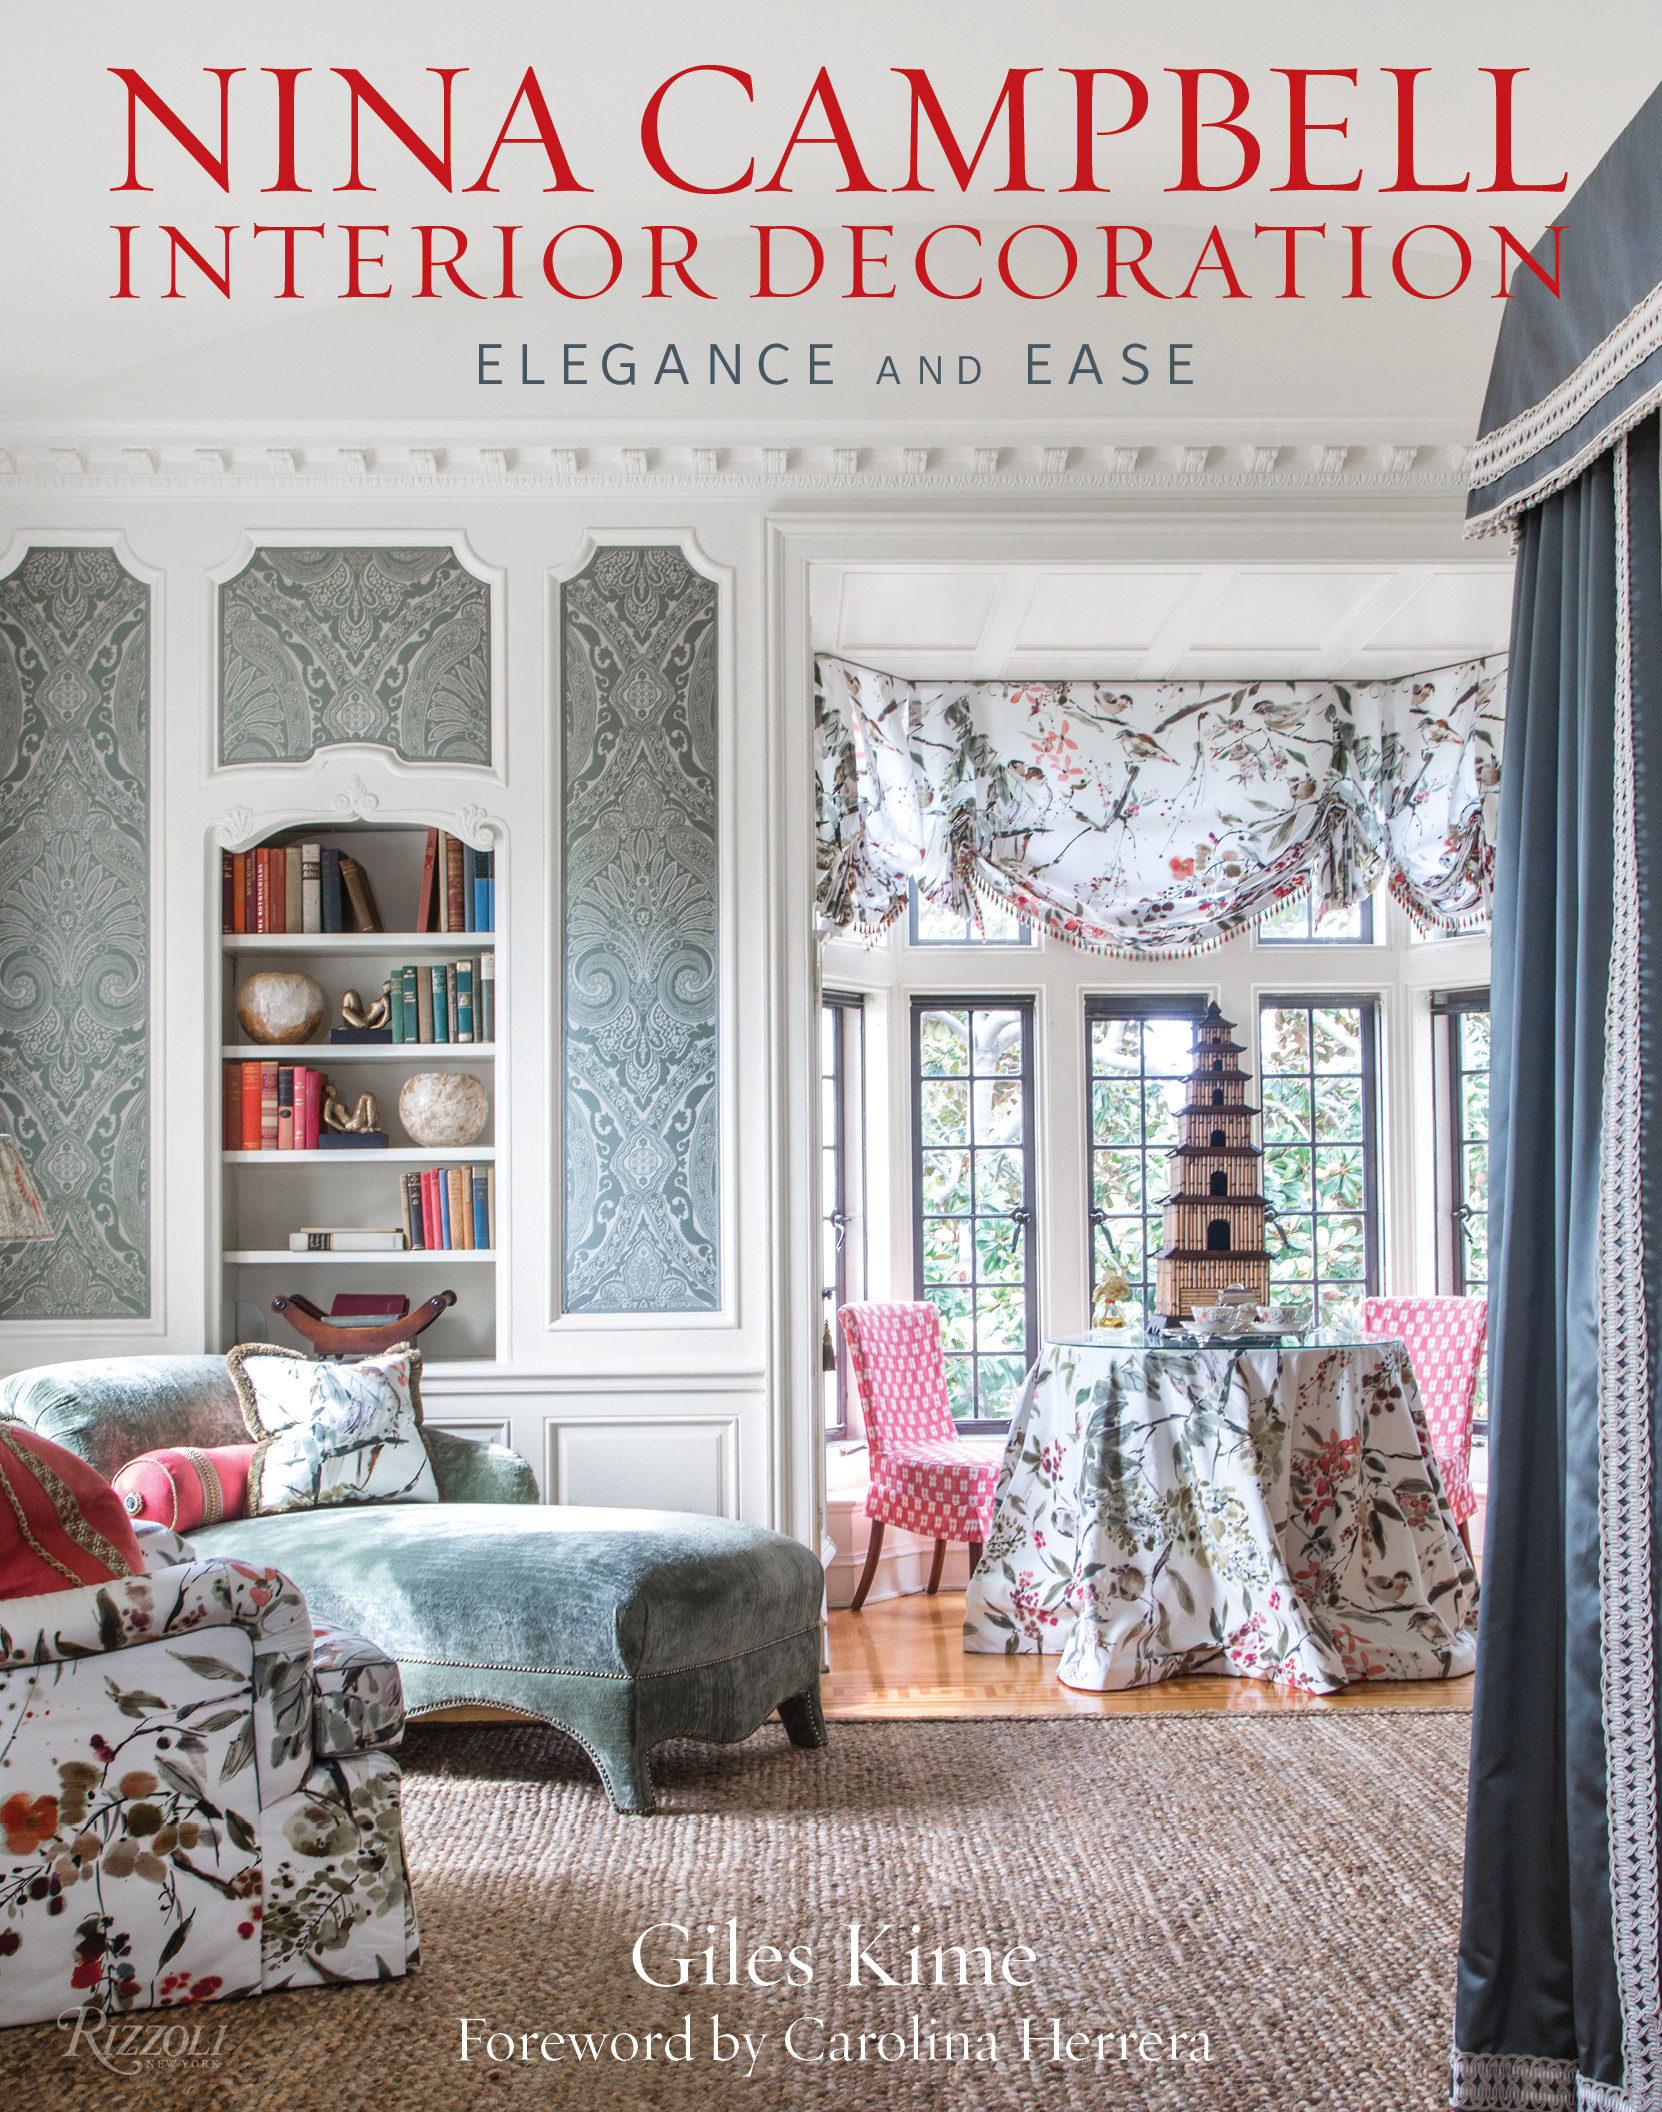 1 INTERIOR_DECORATION_JACKET_v5.jpg